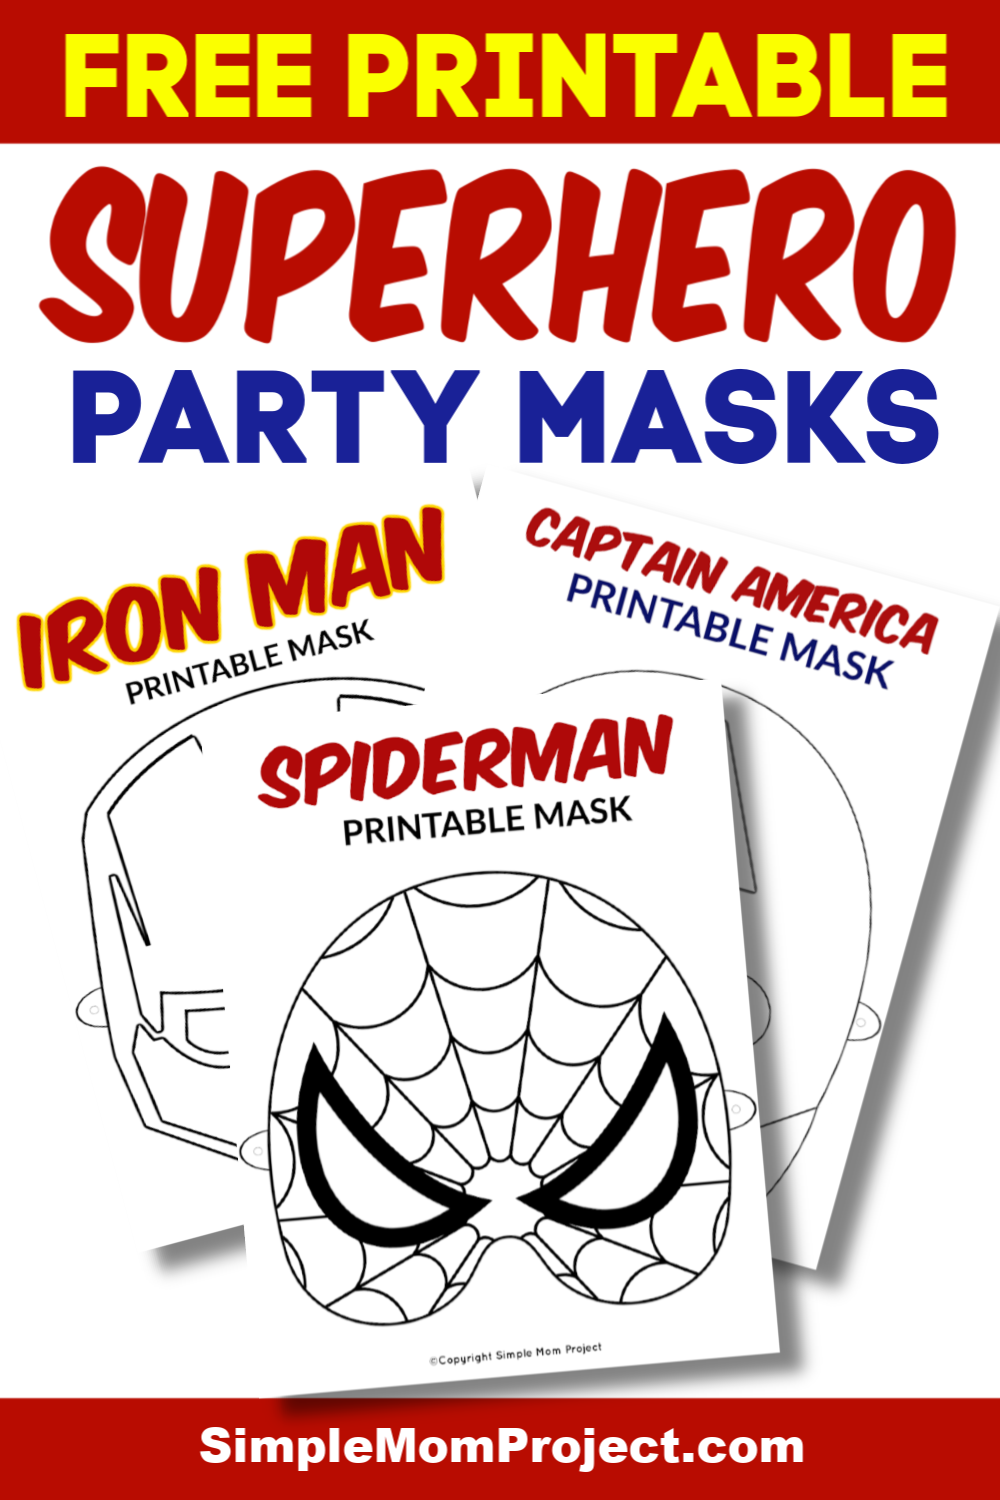 Free Printable Superhero Face Masks for Kids - Simple Mom Project